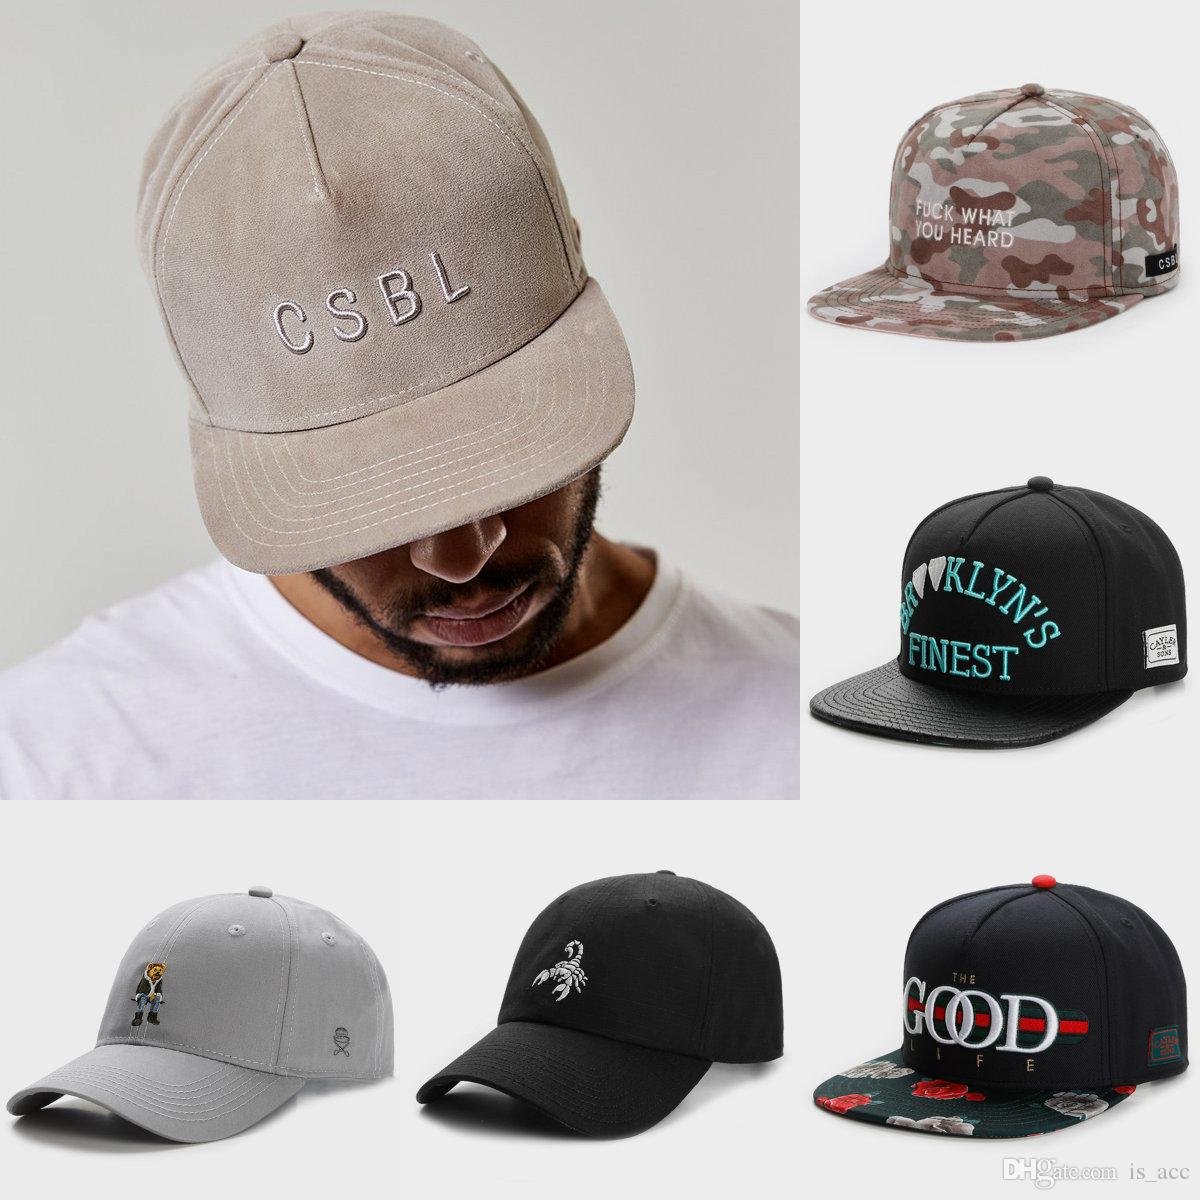 ca9507282a3e1 Men Women Brand Snapback Cap Designer Hats Casquette Youth Hip Hop Hat  Sports Basketball Baseball Caps Hats Fitted Gray Black Hats For Sale  Neweracap From ...